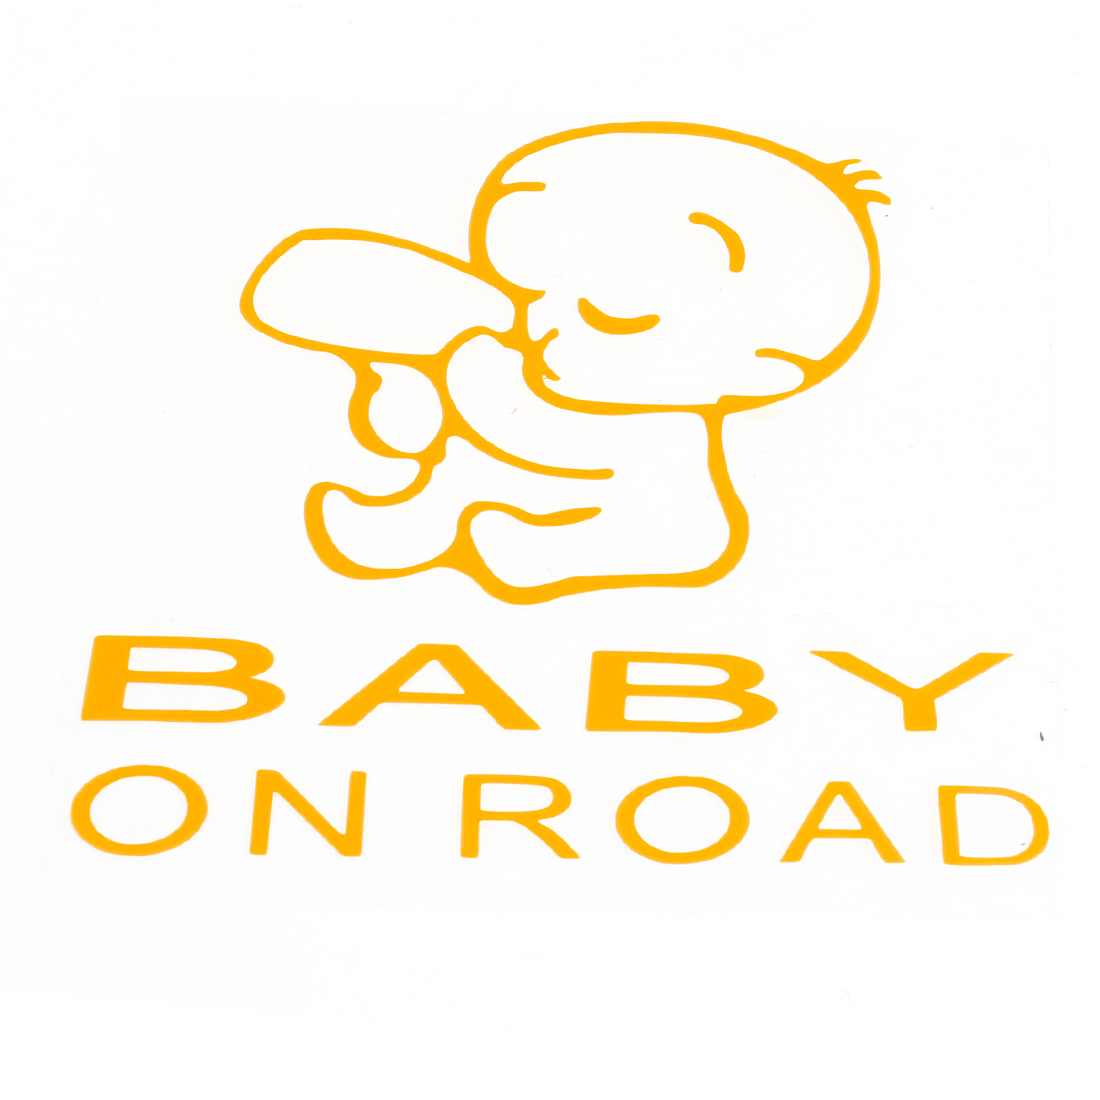 Baby on Road Printed Safety Sign Self Adhesive Decal Sticker Yellow for Car